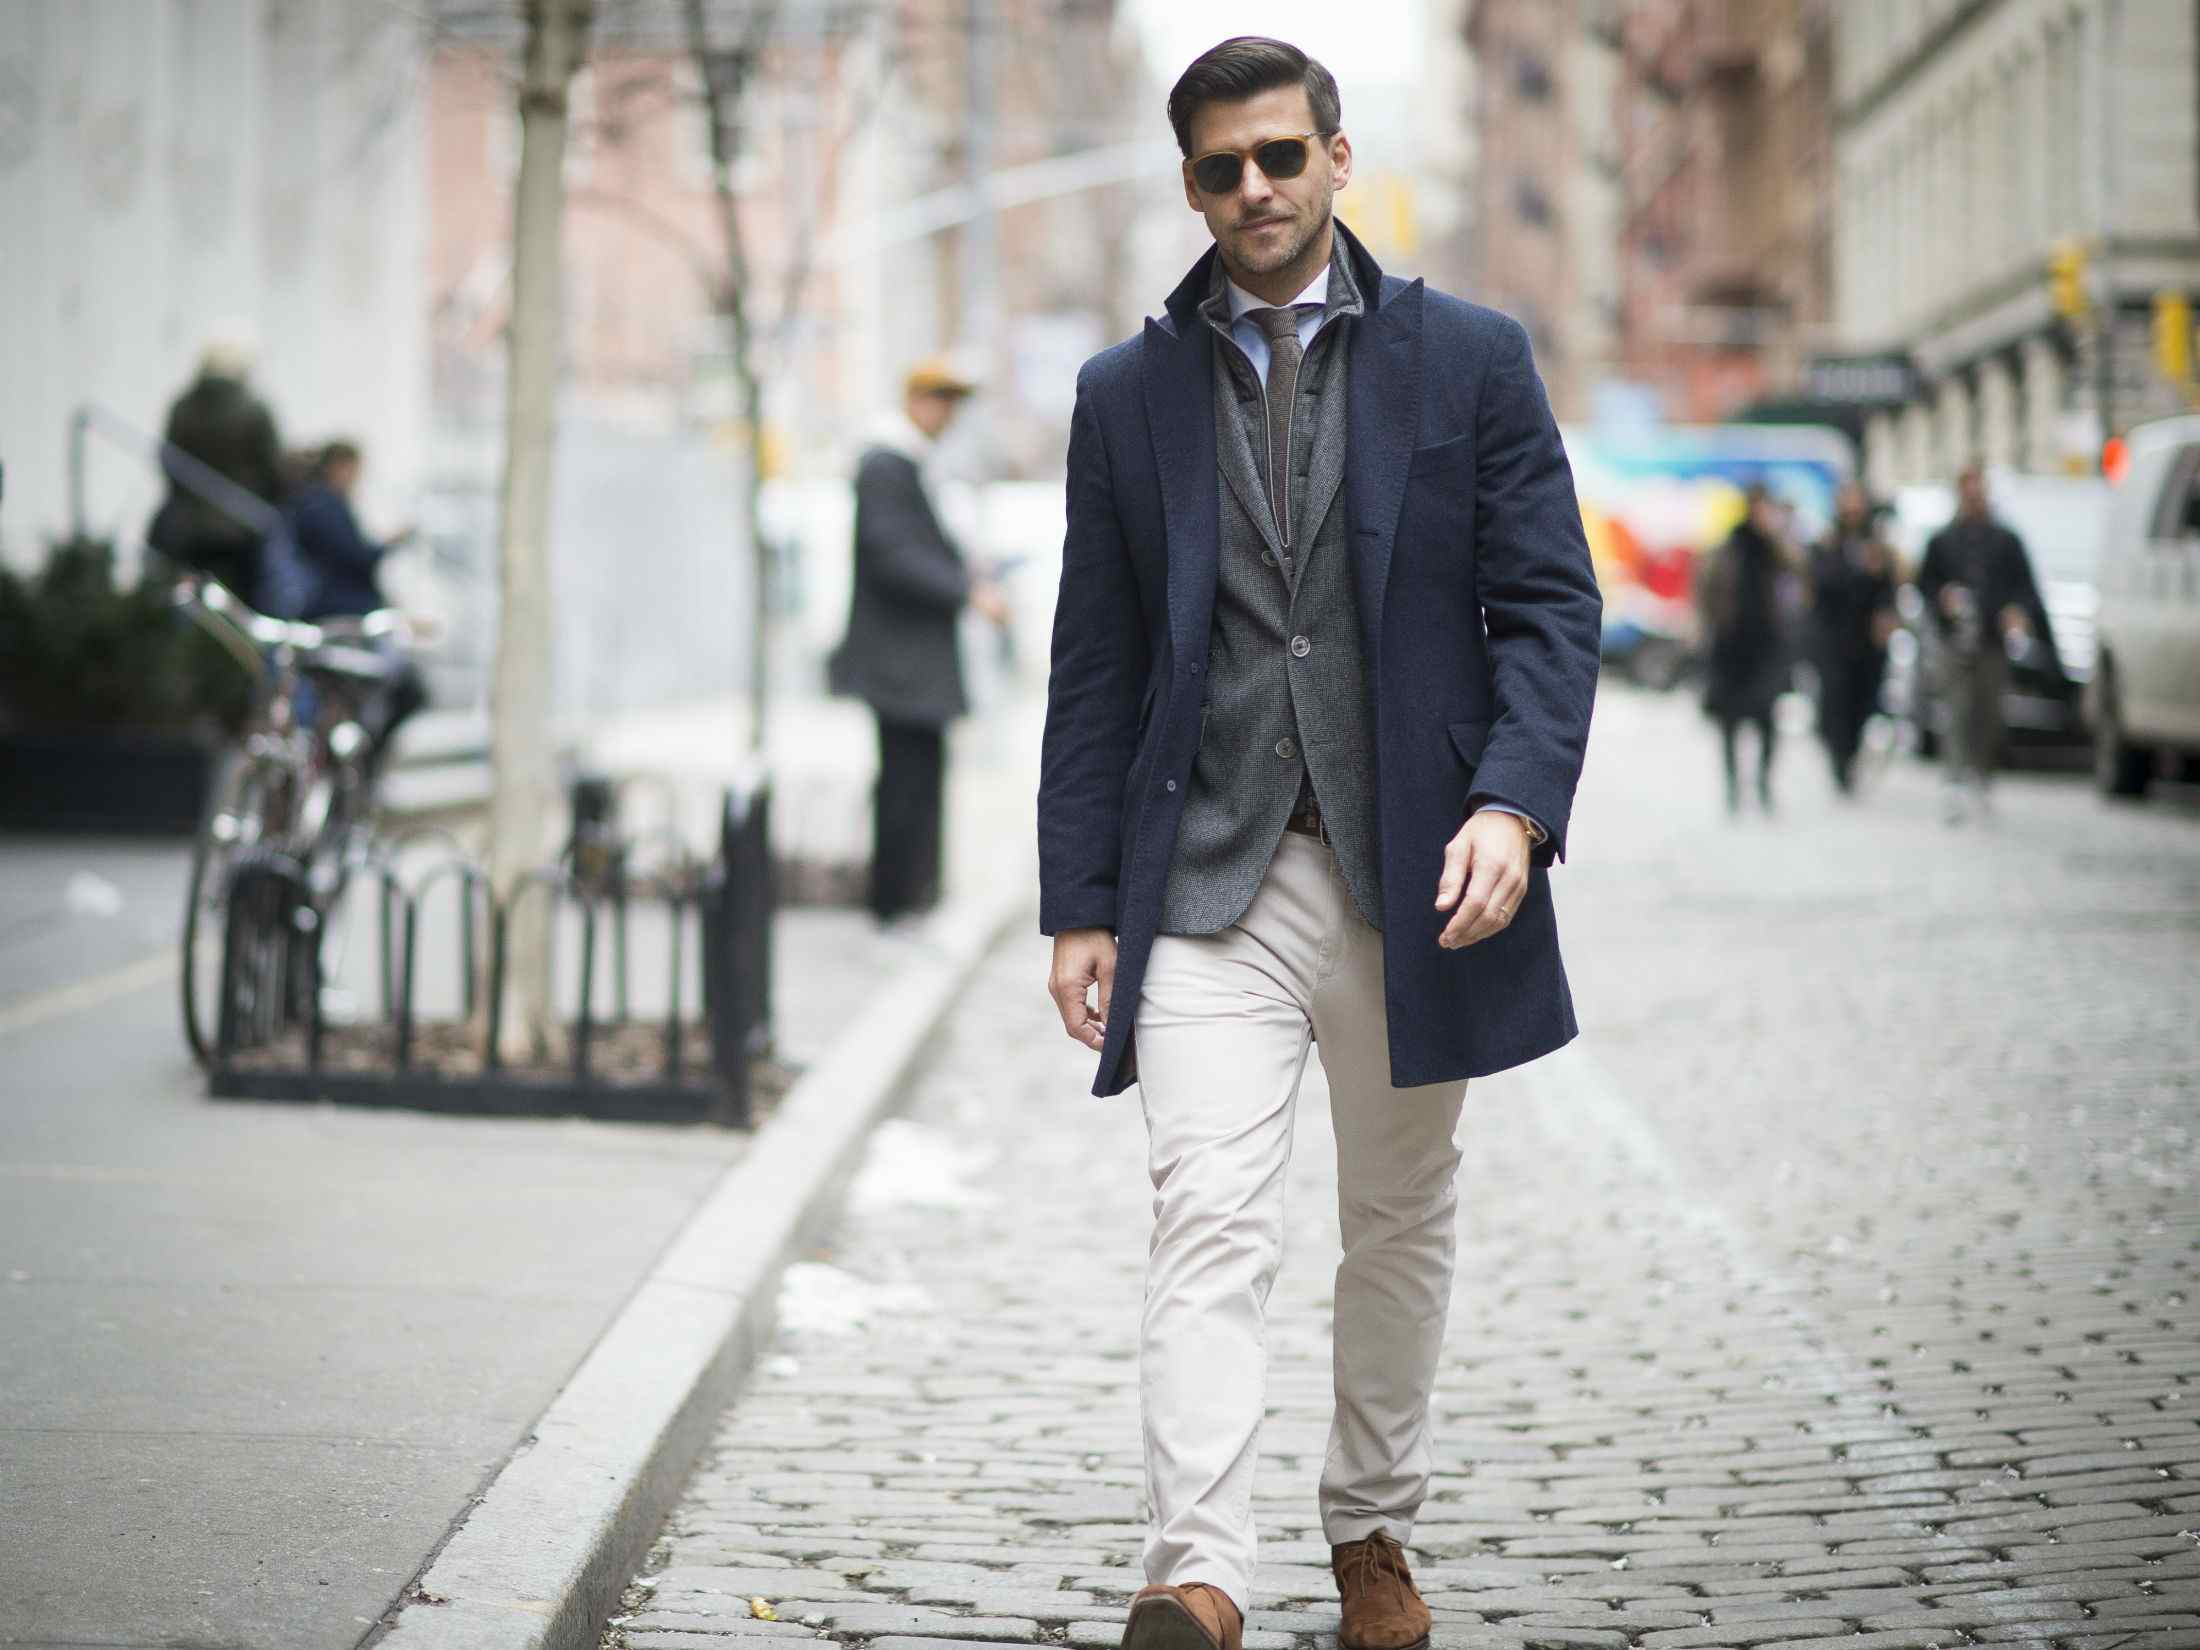 54f8647842 Men's Fashion Trend - How to Wear White Jeans for Men